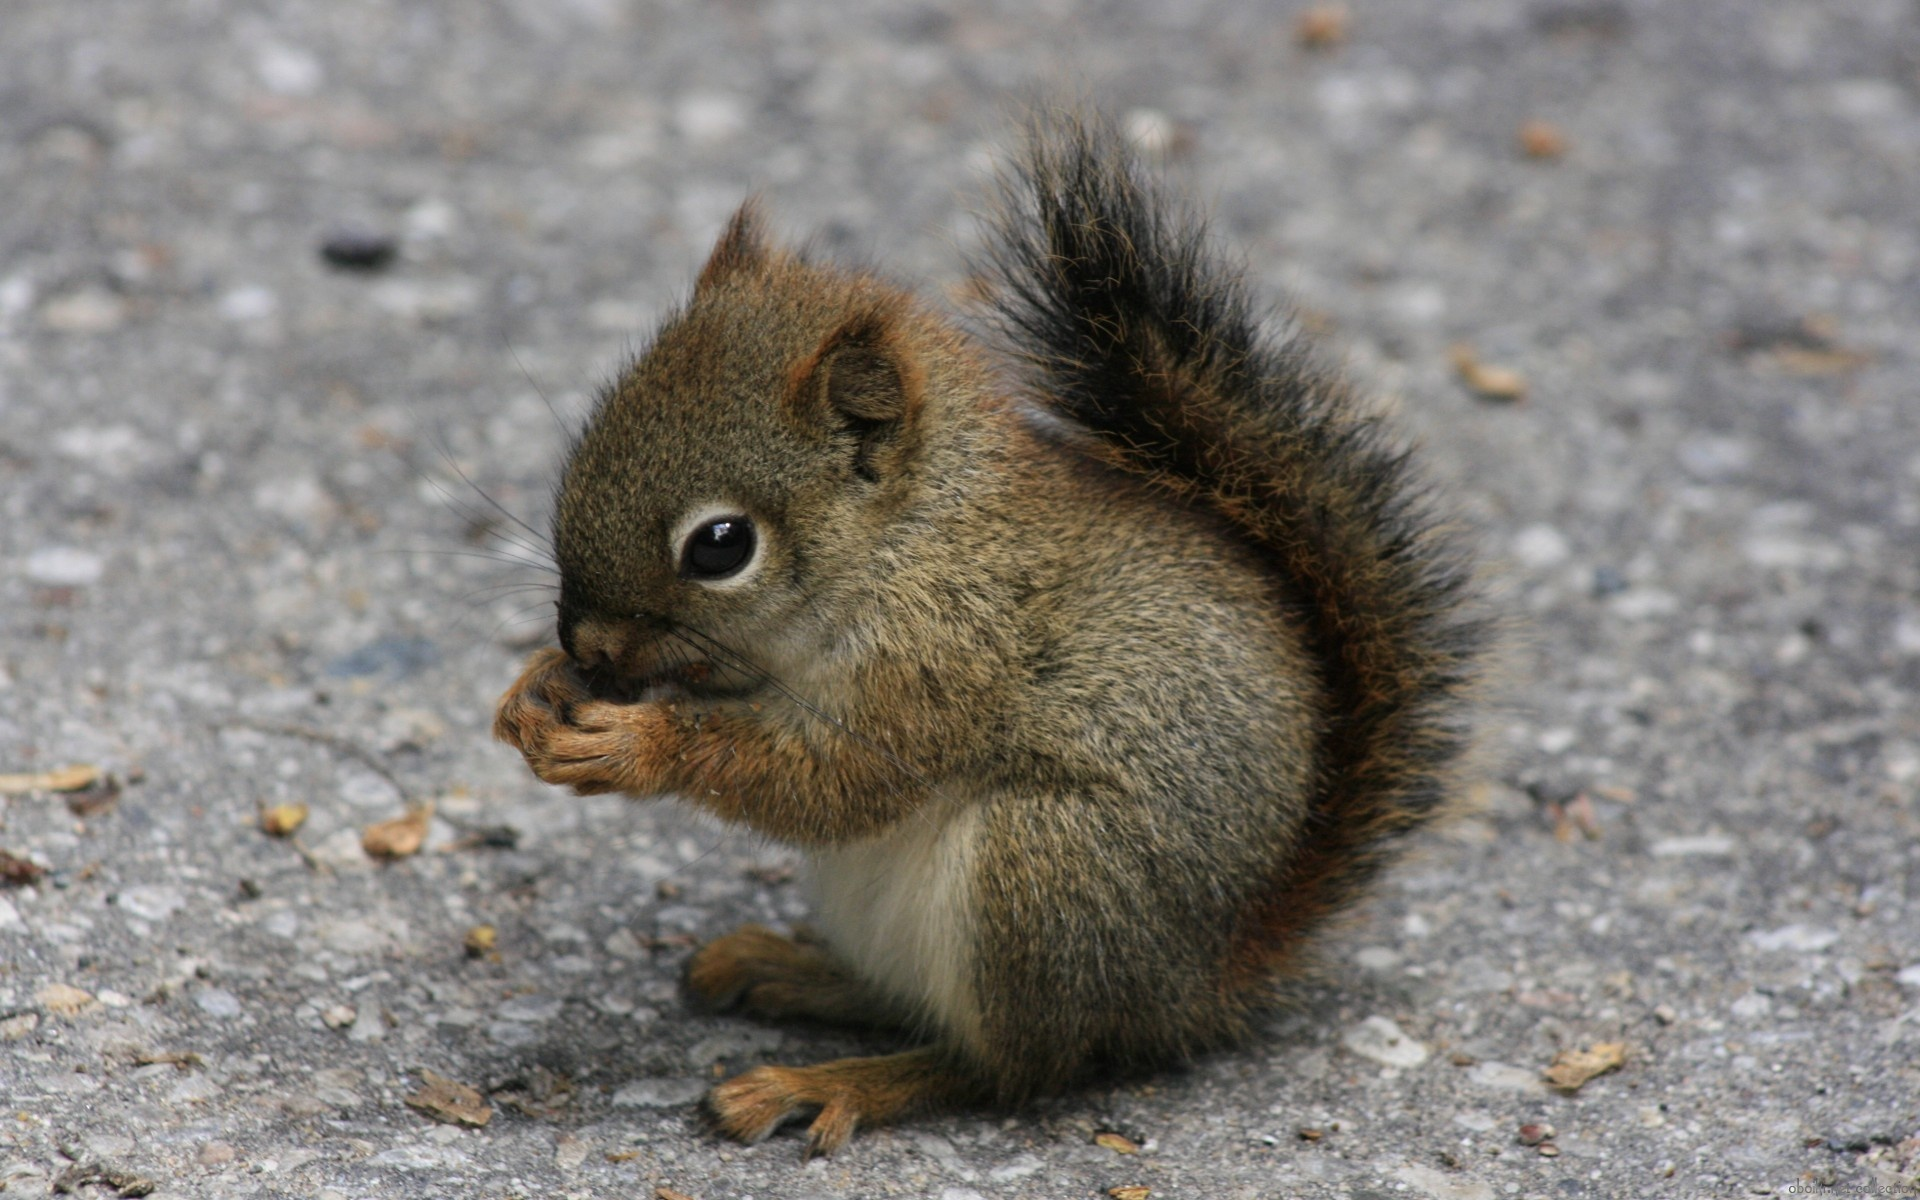 Adorable Squirrel